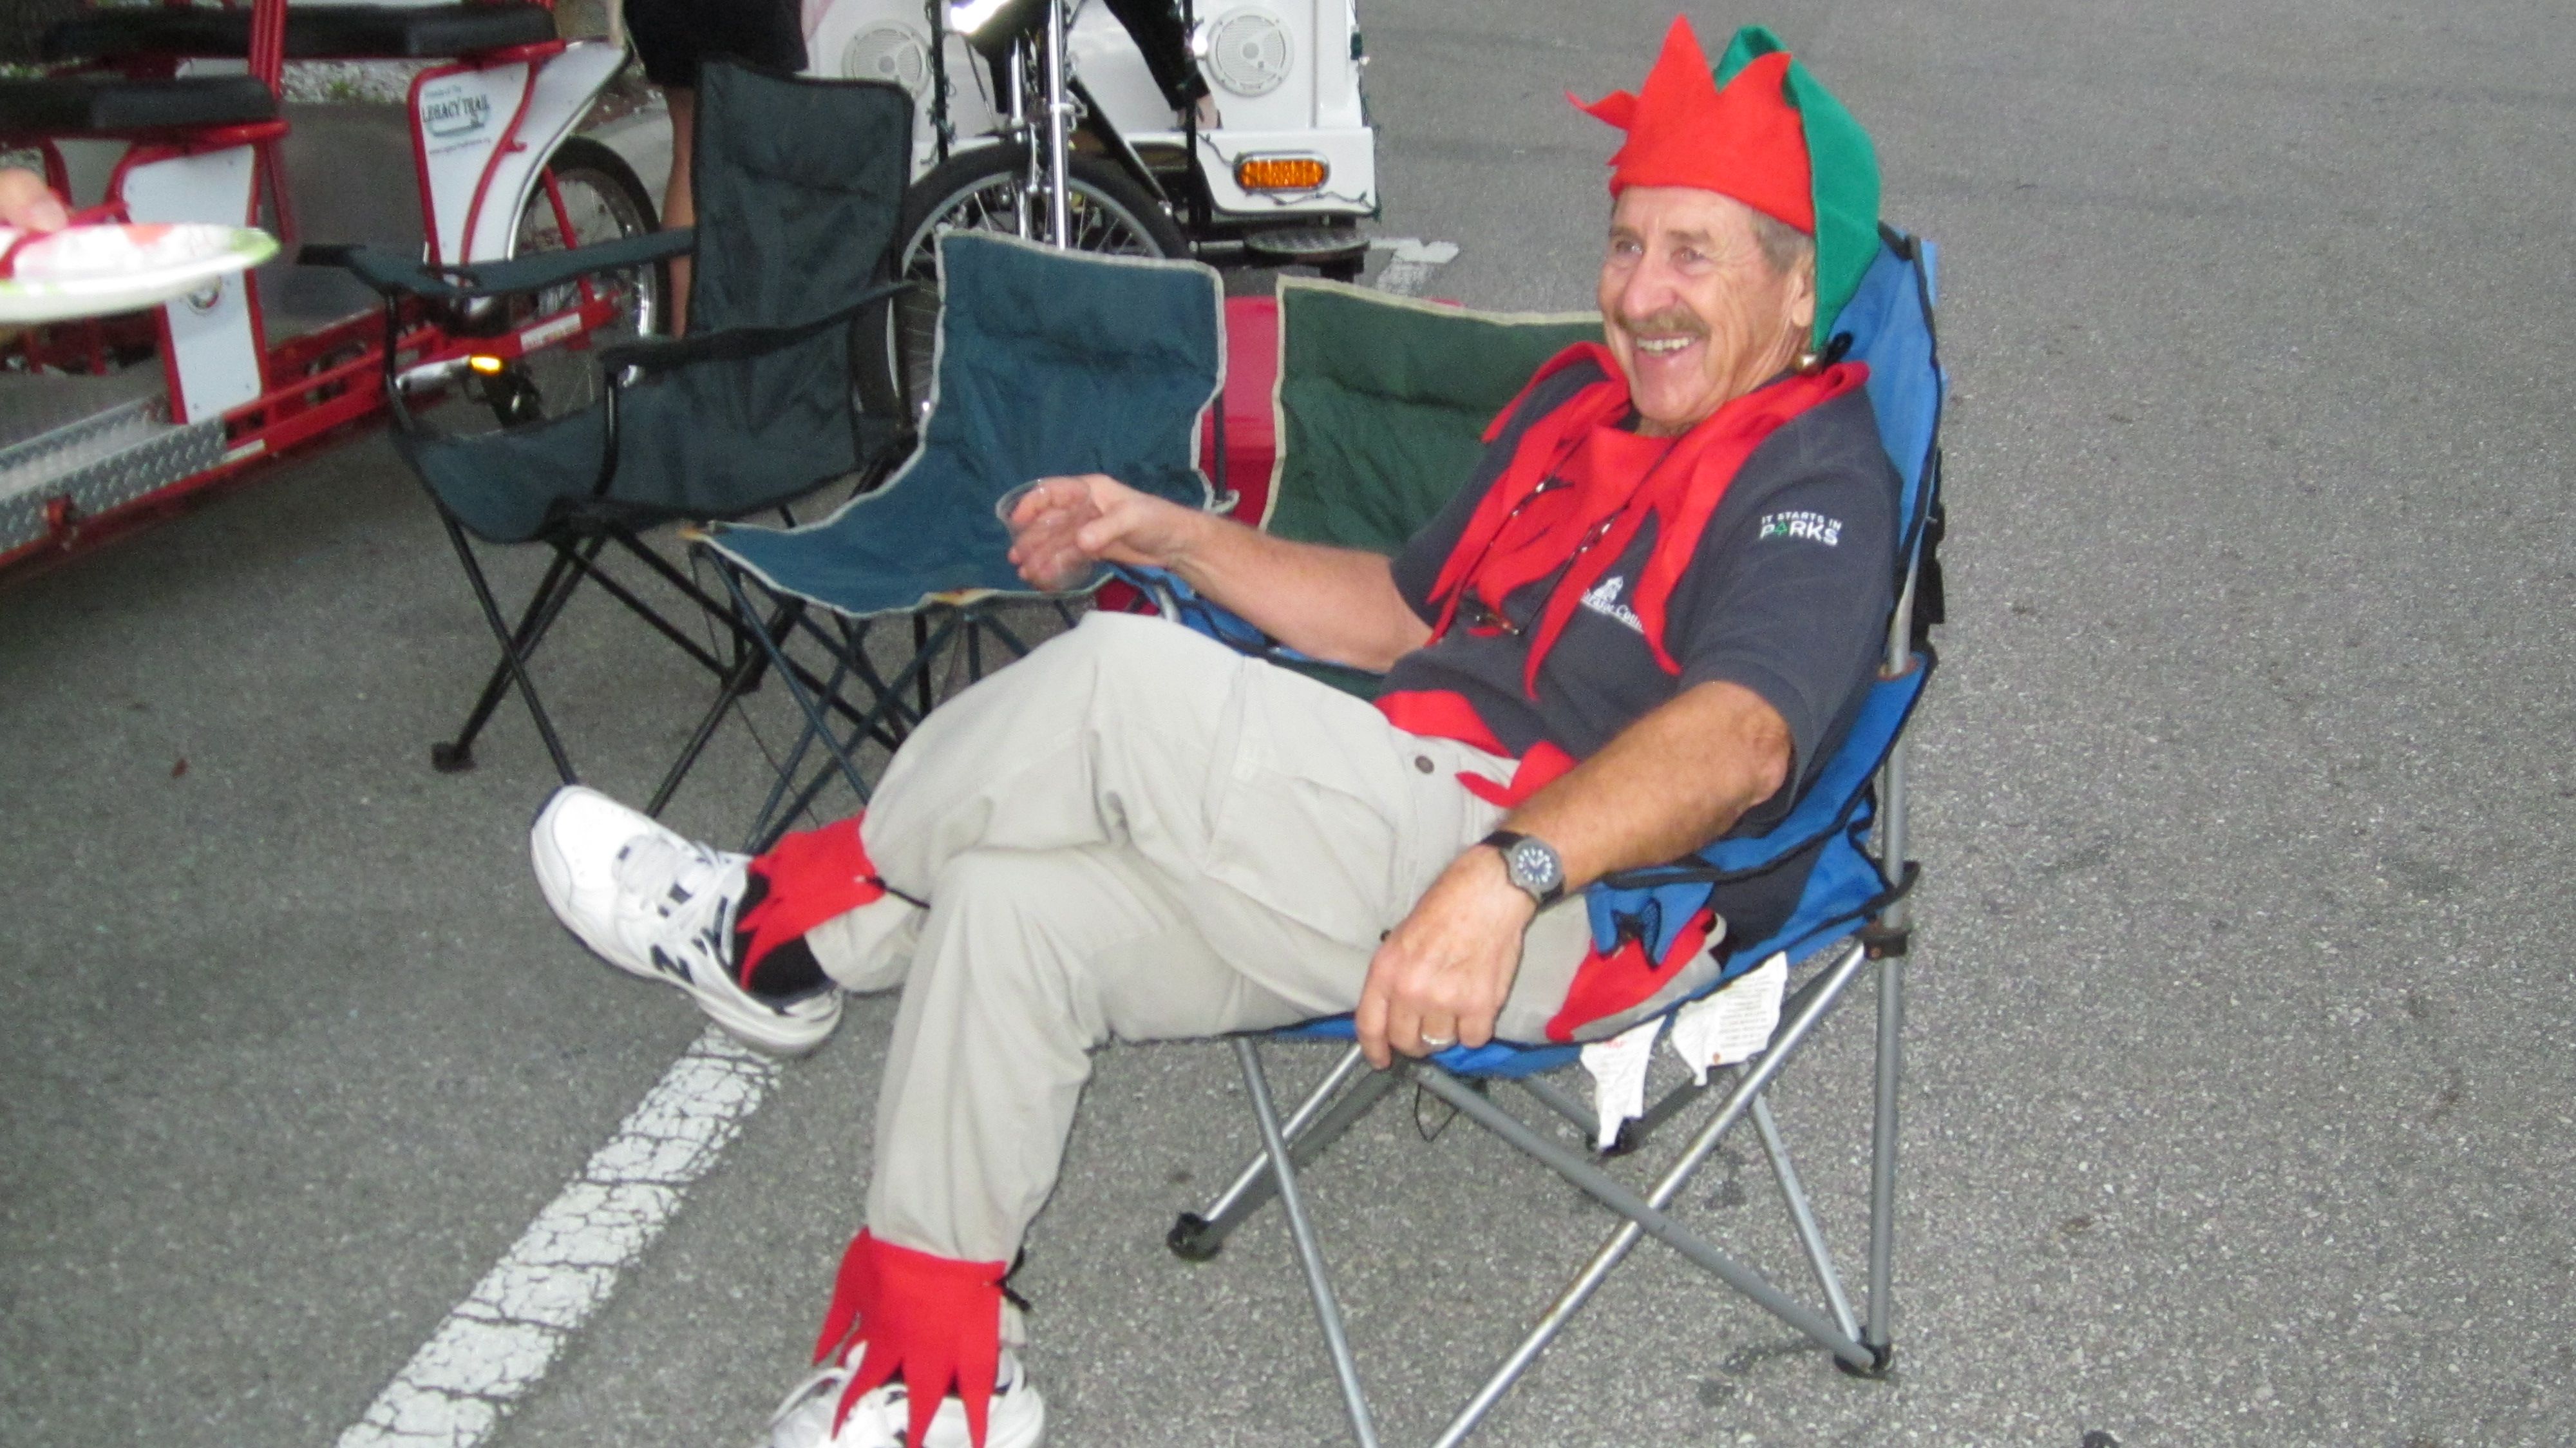 Ed Wolfenbarger relaxes before pedaling the surrey in the Sarasota Christmas Parade.